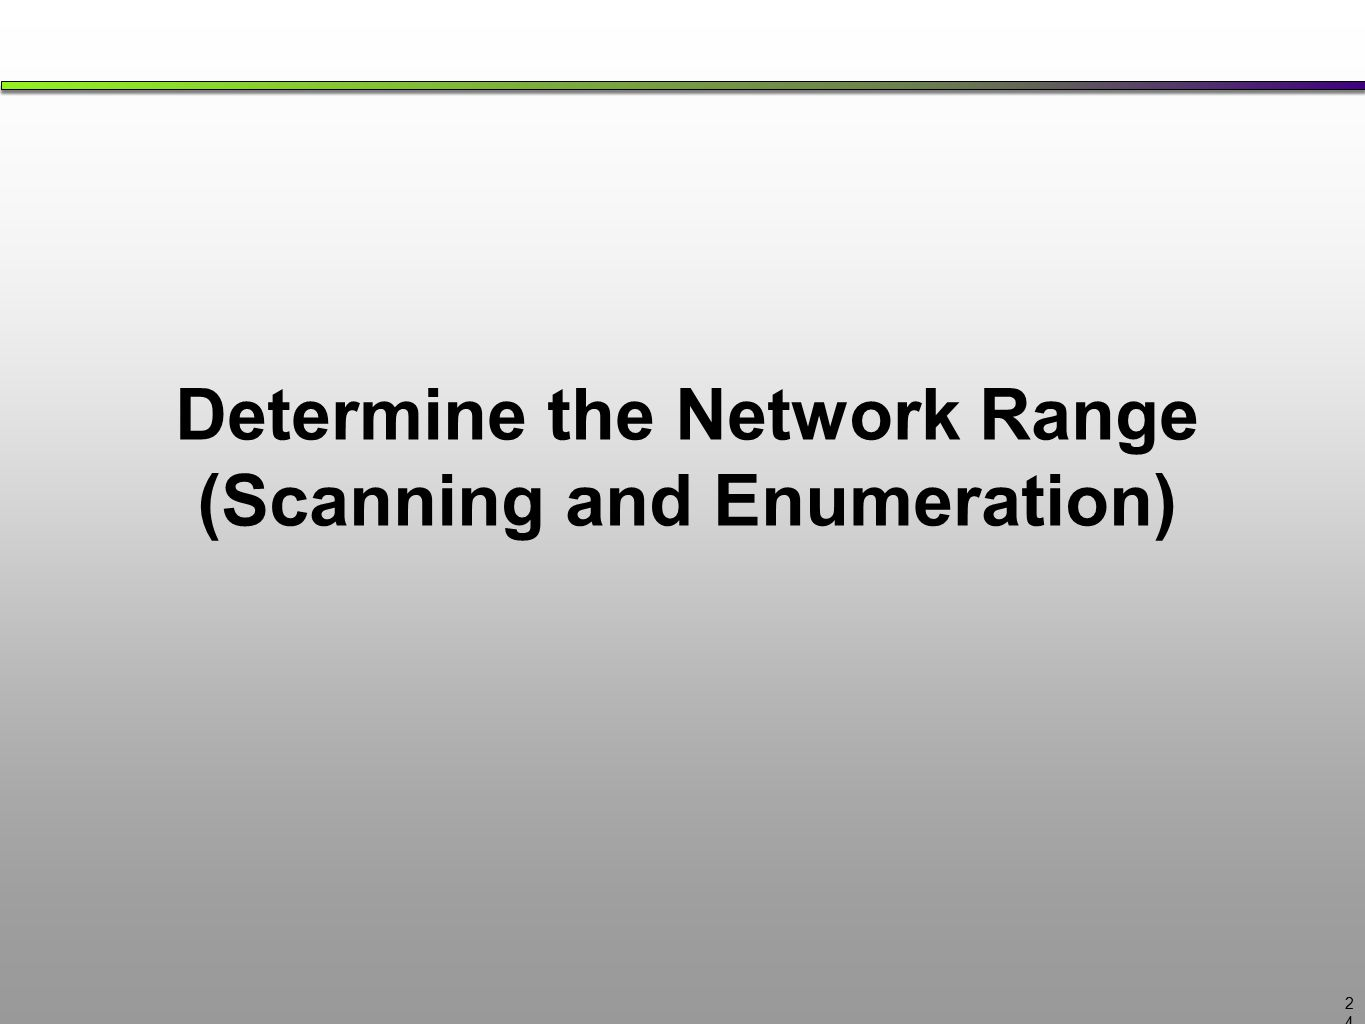 Determine the Network Range (Scanning and Enumeration)